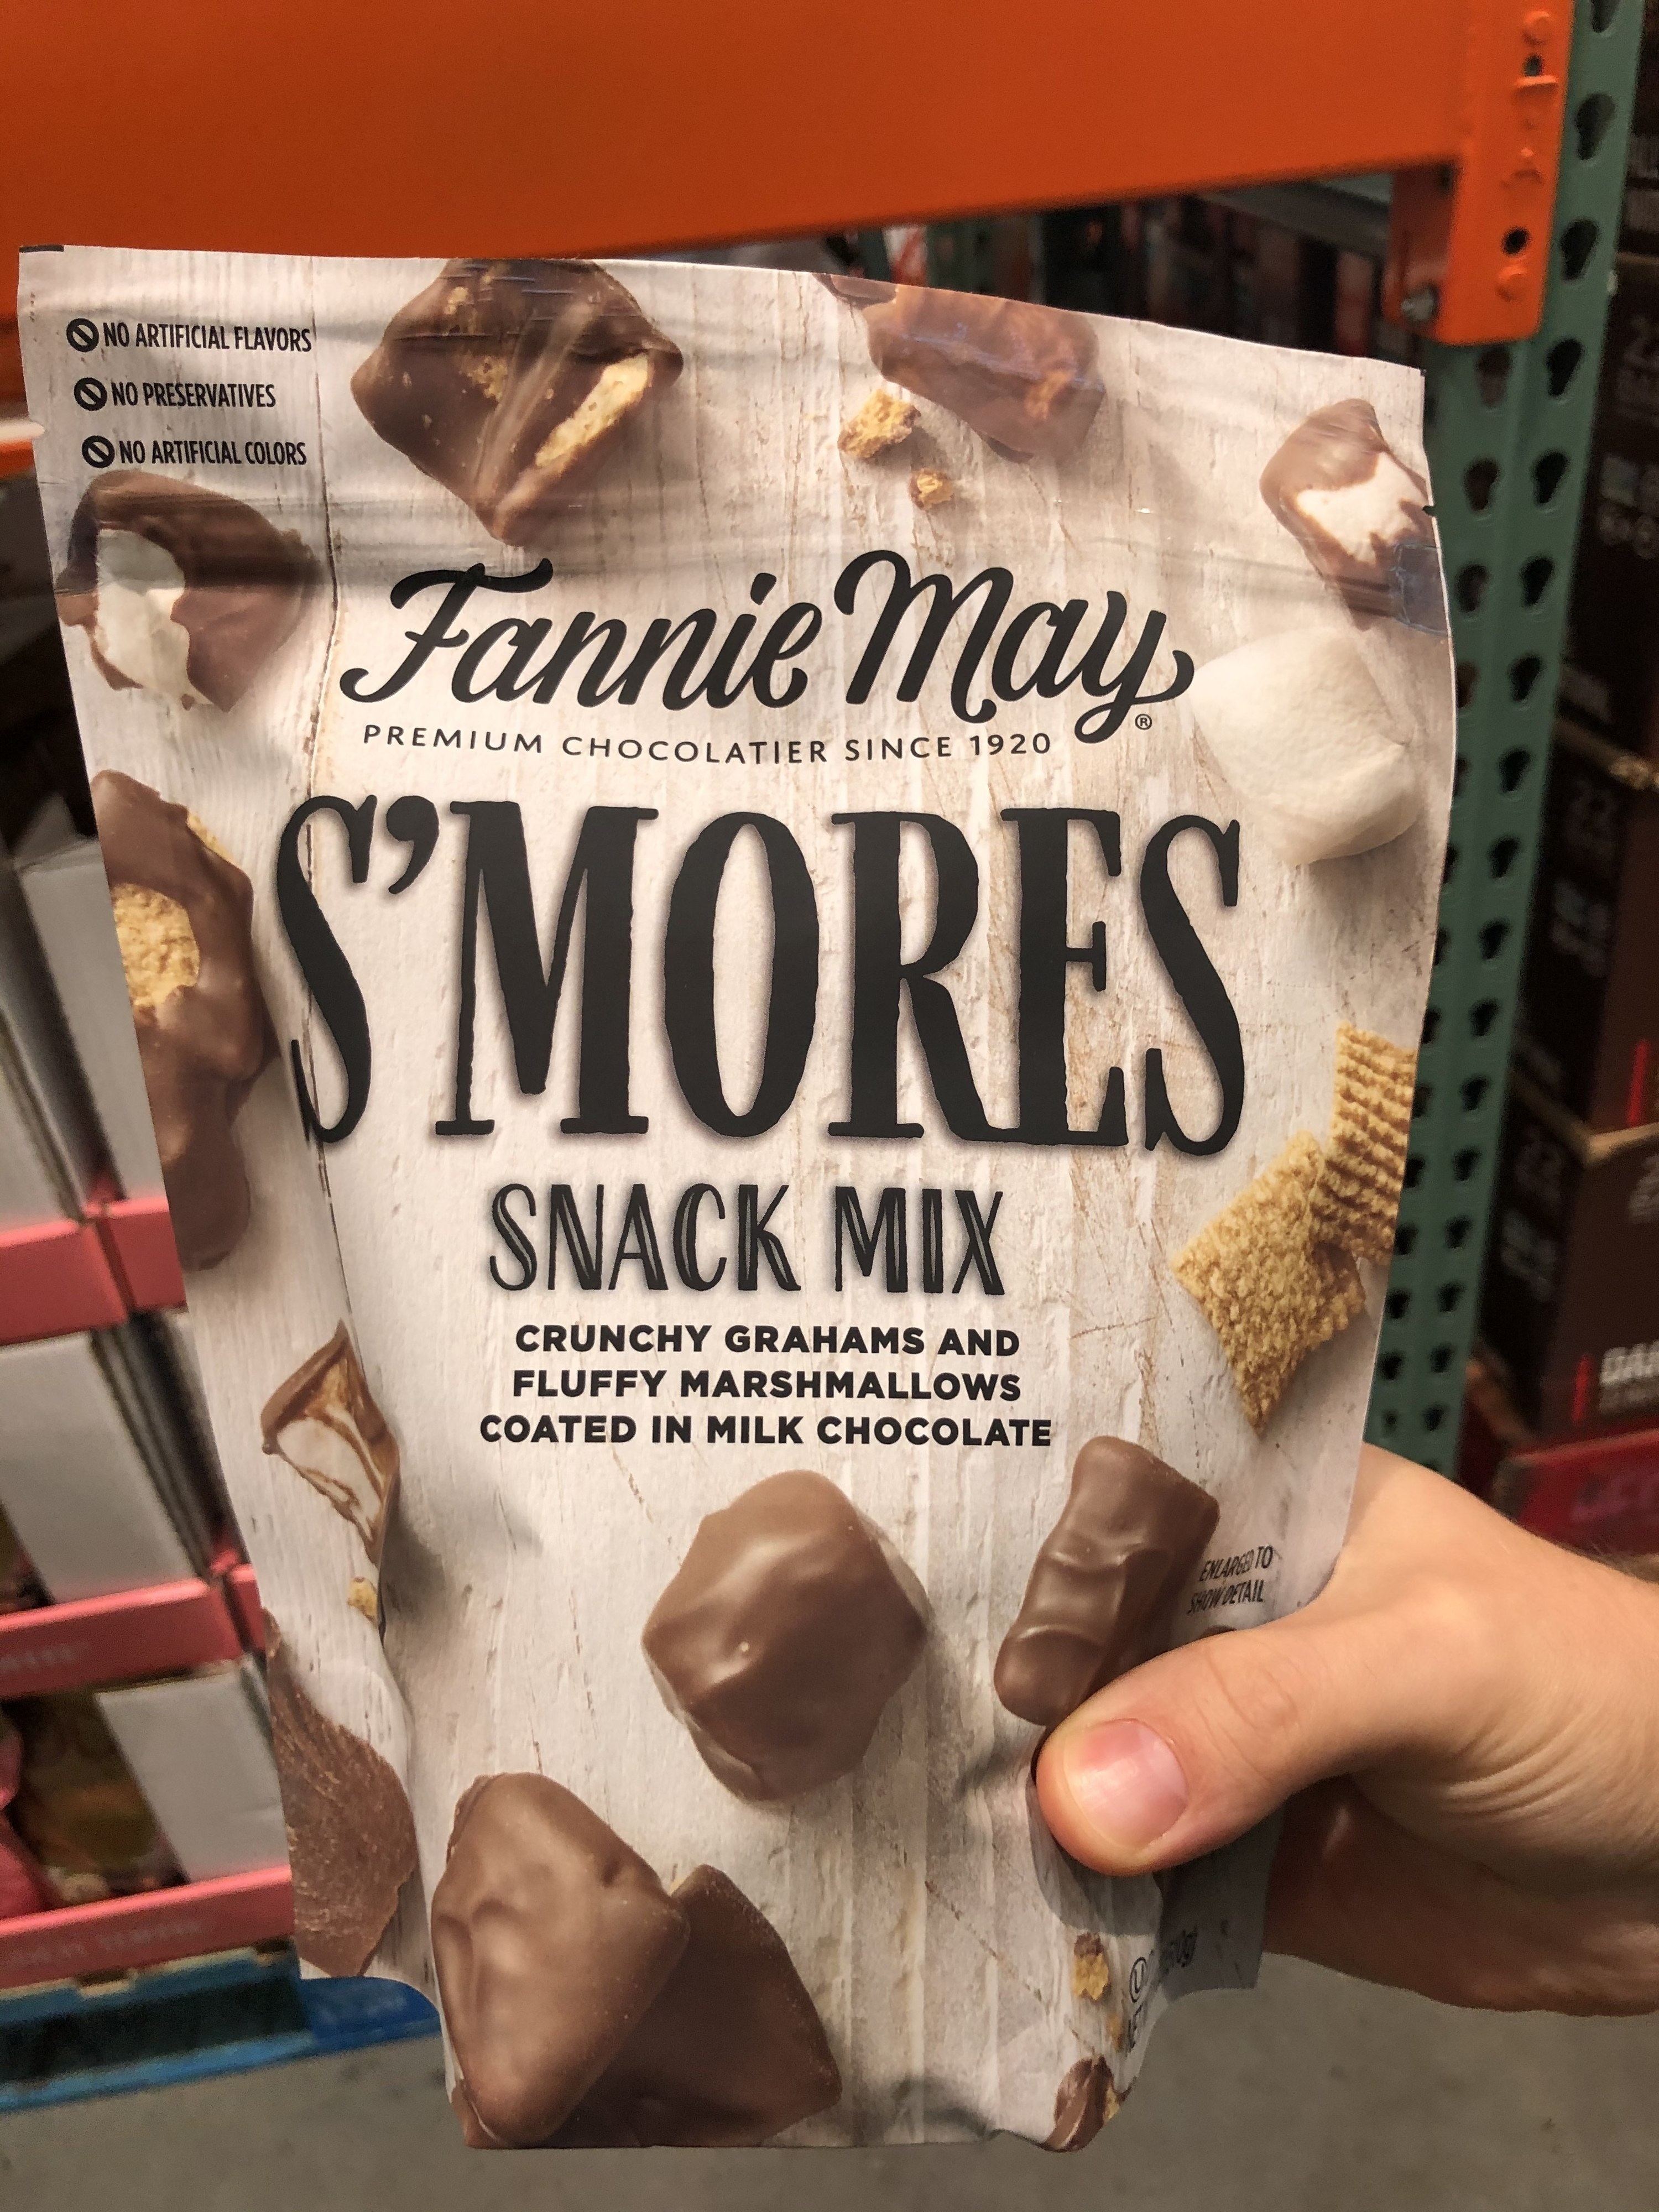 A box of Fannie May S'mores Snack mix